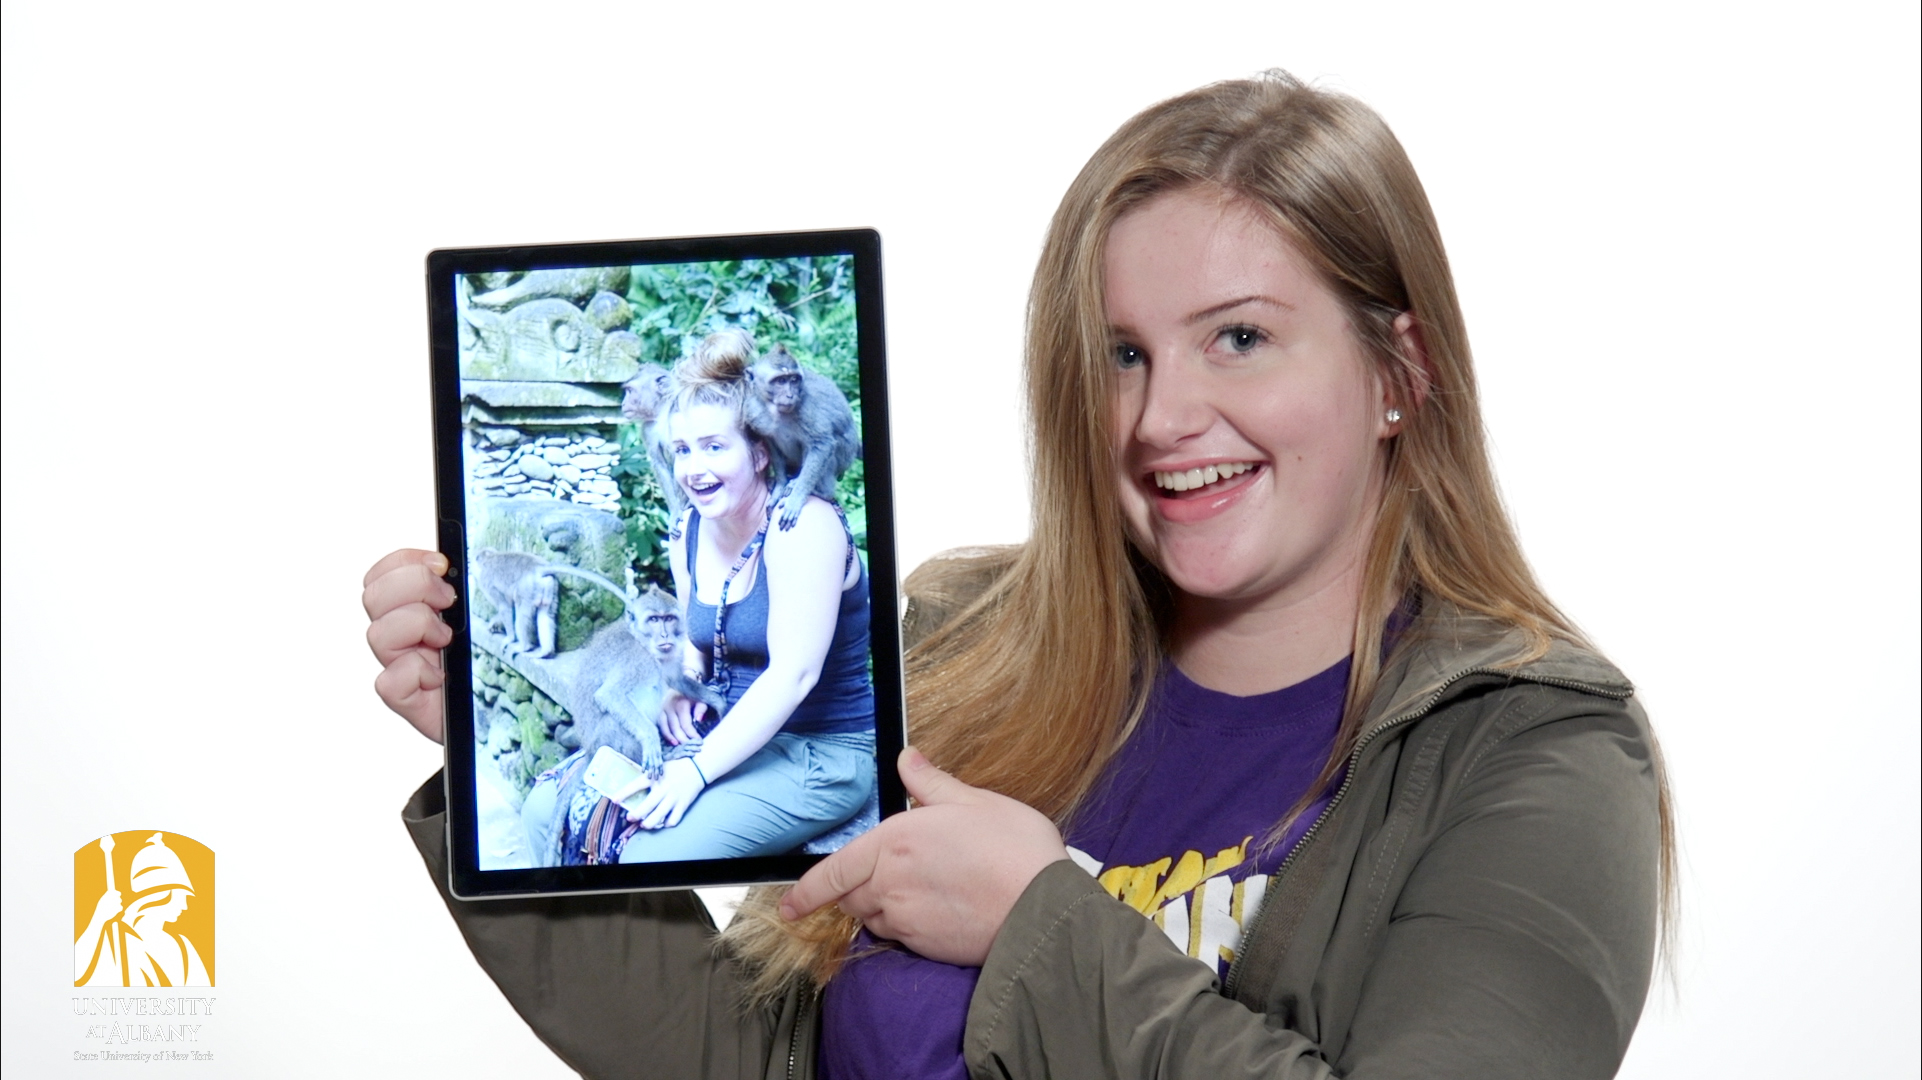 Woman holding a tablet showing a picture of herself with several monkeys climbing on her.